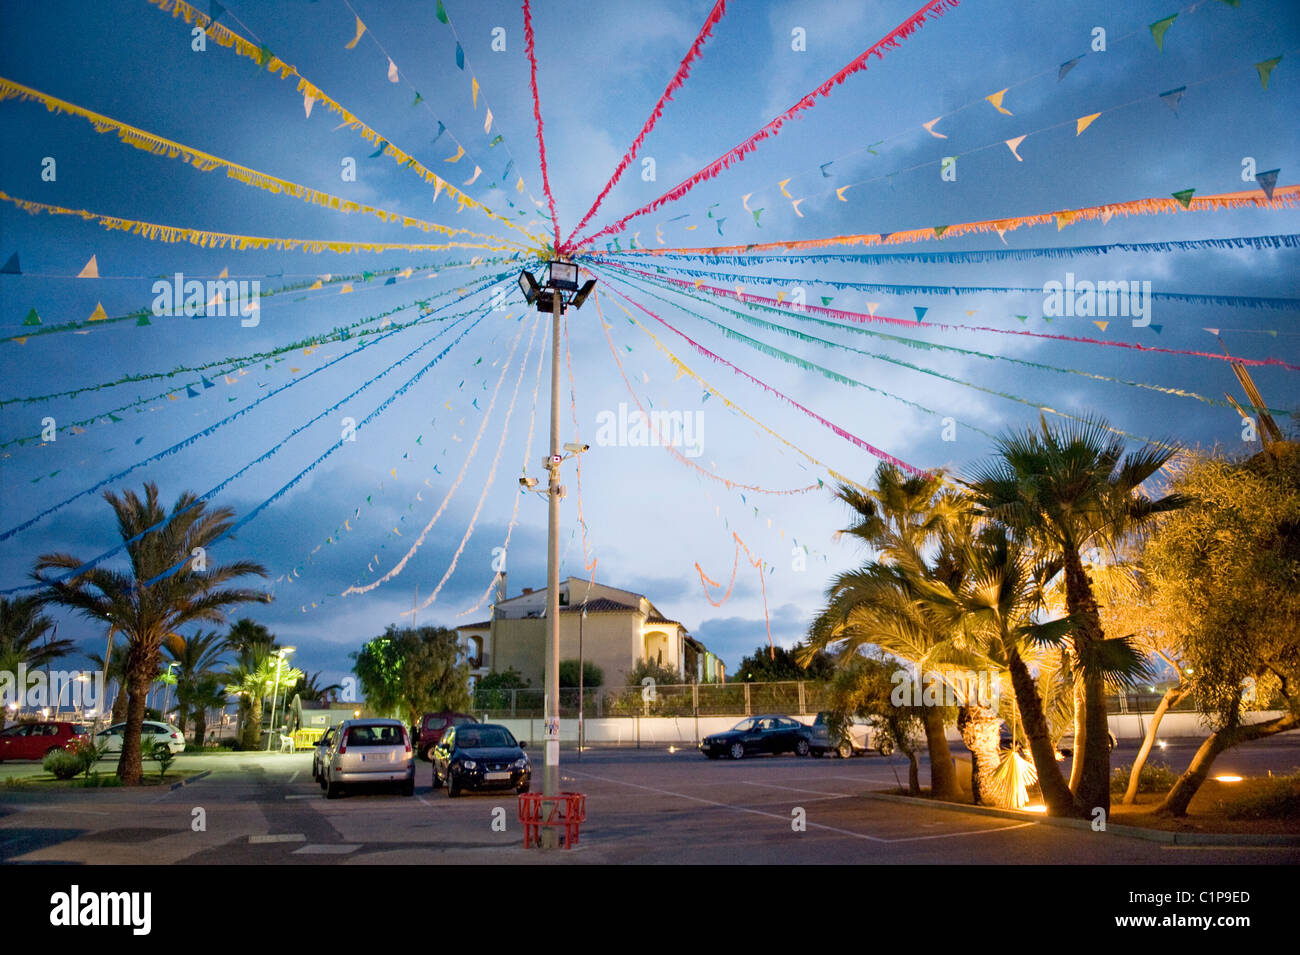 Decorated street during dusk Stock Photo